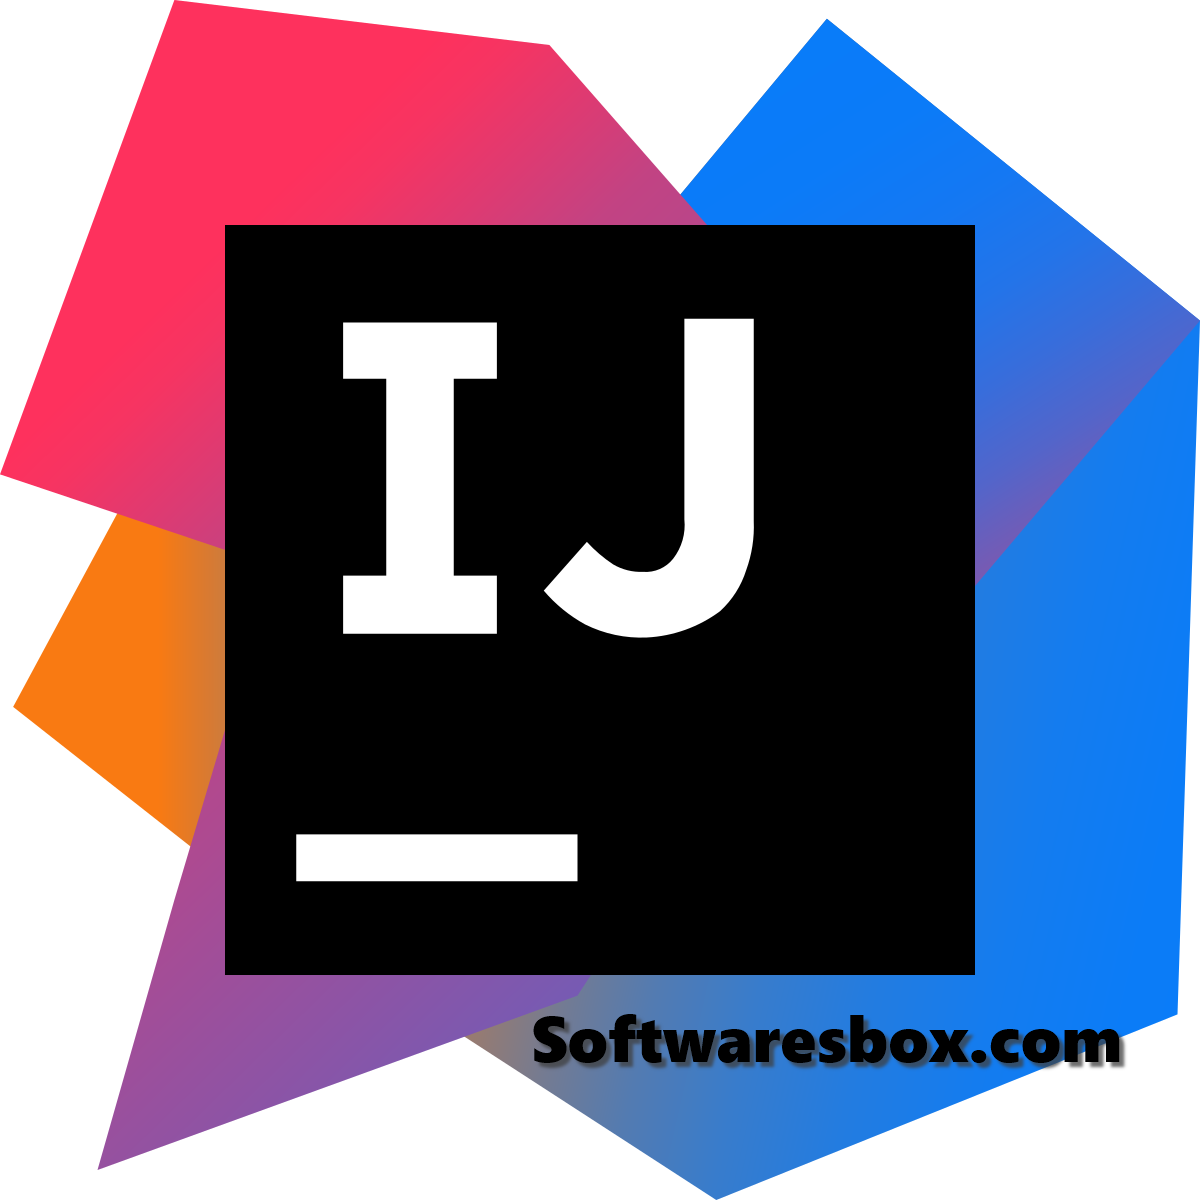 IntelliJ IDEA 2018.3 Crack Plus License Key With Activation Codes Free Download